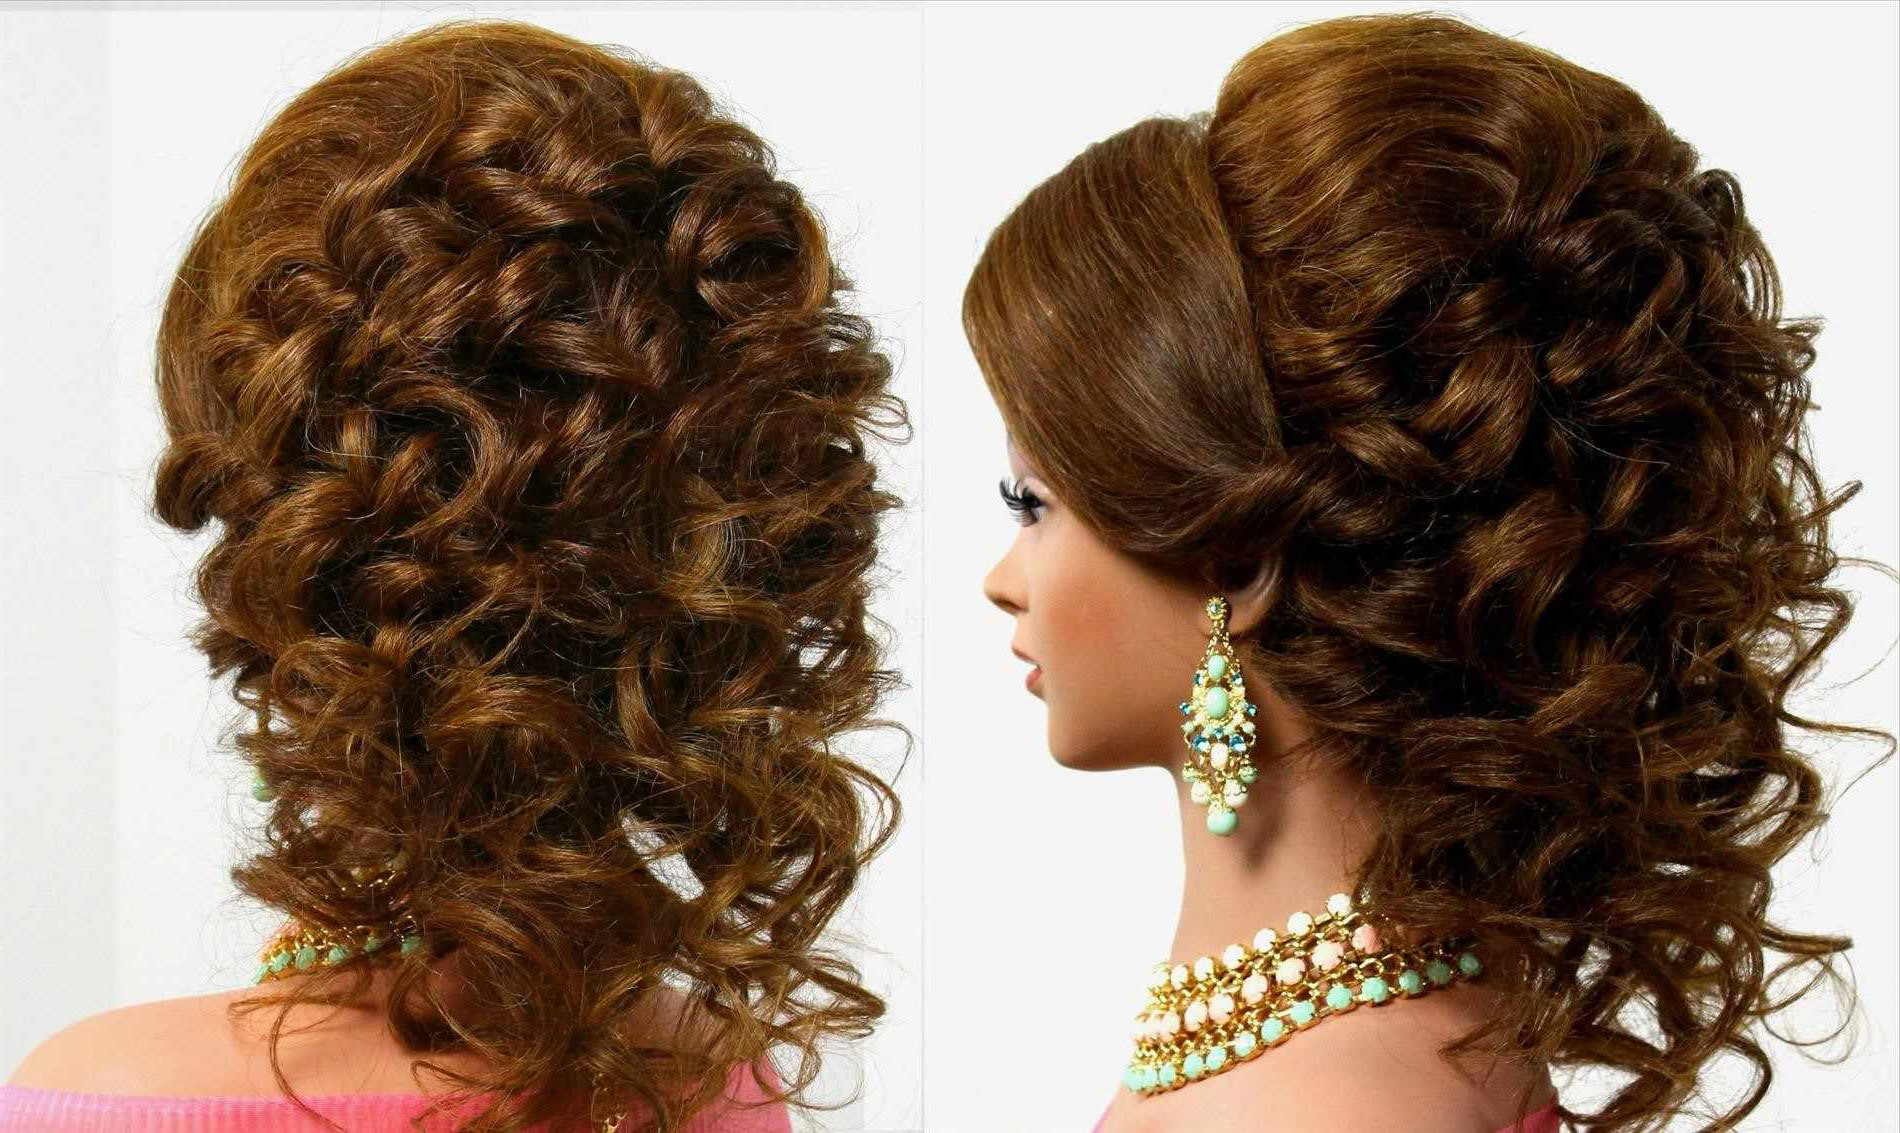 Styles & Ideas: Great Hairdo For Wedding Guest (Gallery 15 of 20)